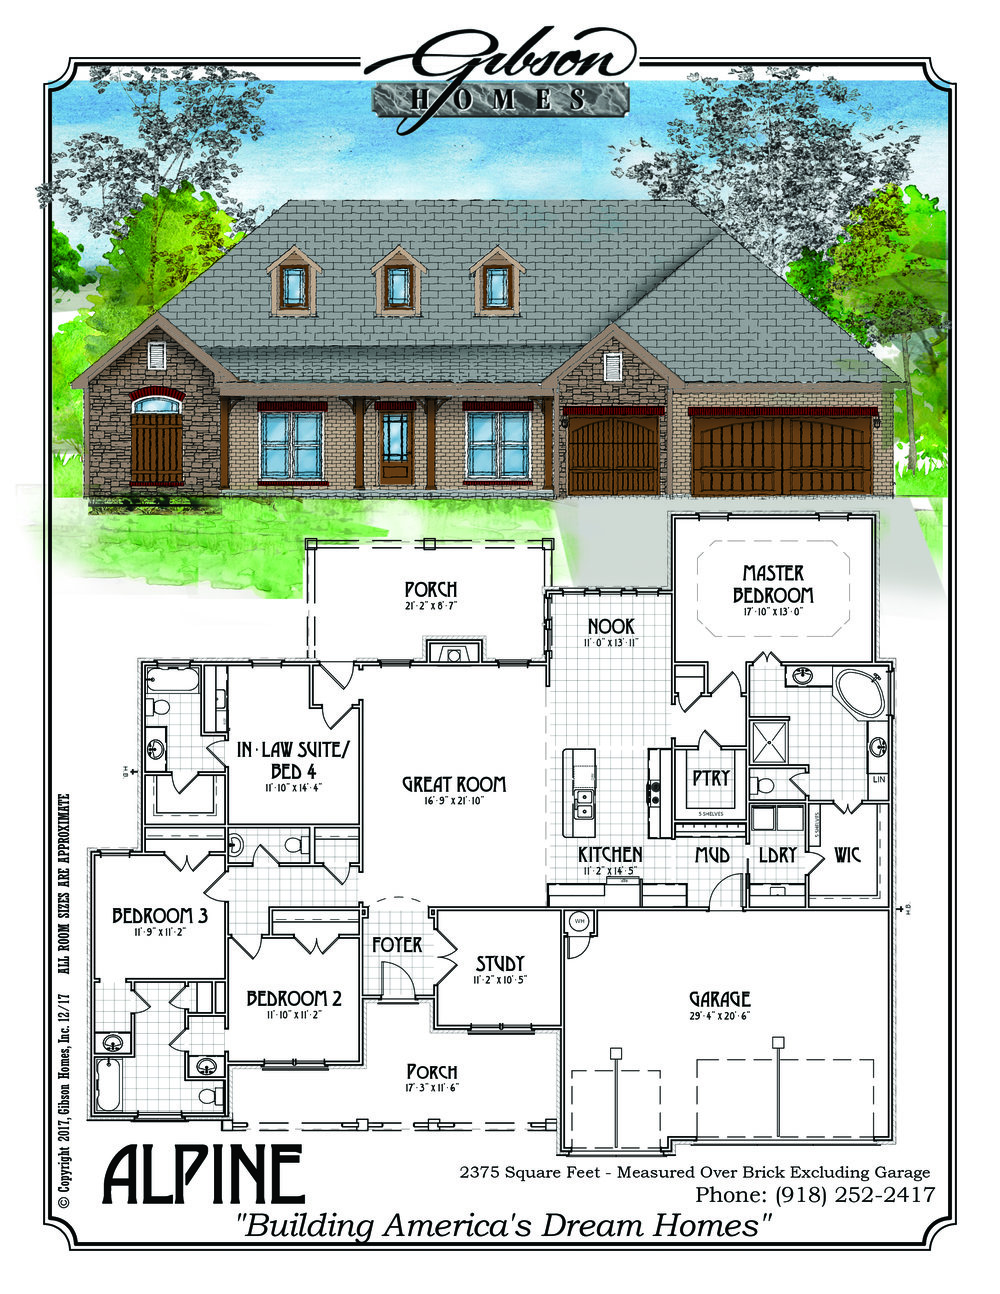 ALPINE - 2547 Sq. Feet3 BedroomsPlus a Mother in Law Suite3.5 Baths3 car GarageBase Price $255,000